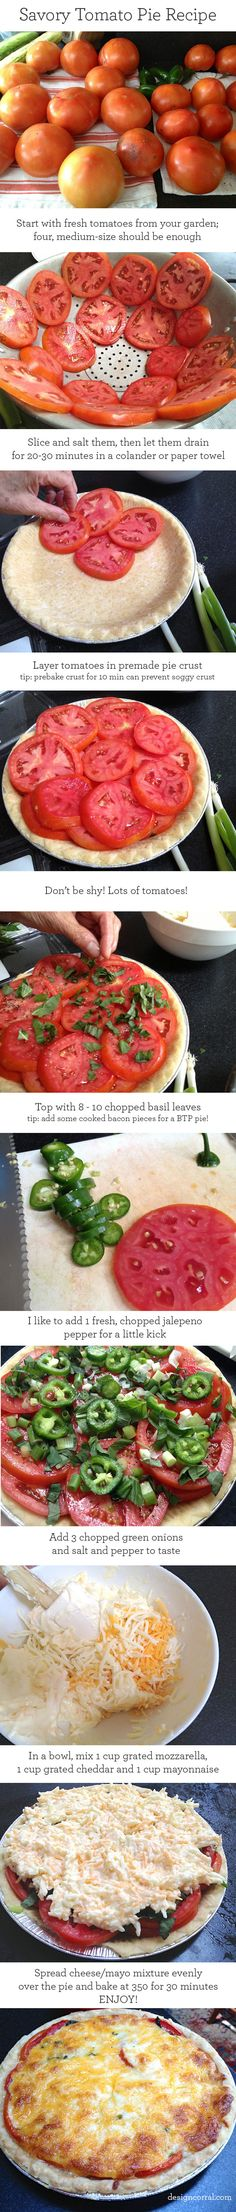 .Savory Tomato Pie Recipe